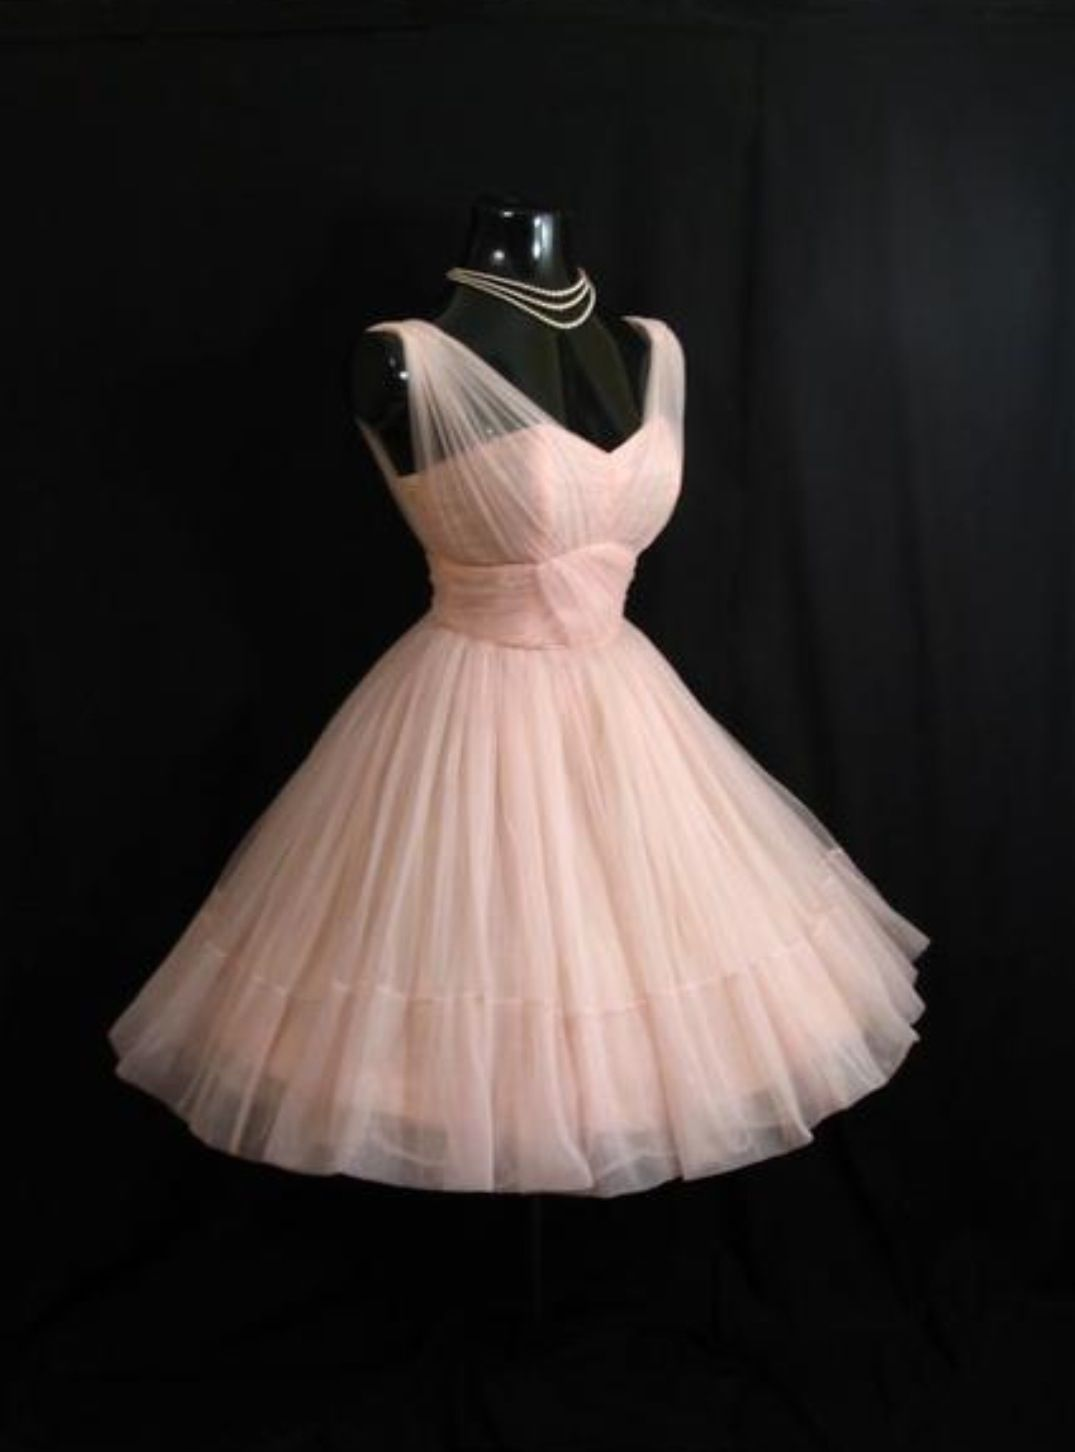 Vintage dress | Someday wardrobe | Pinterest | Baile de graduación ...